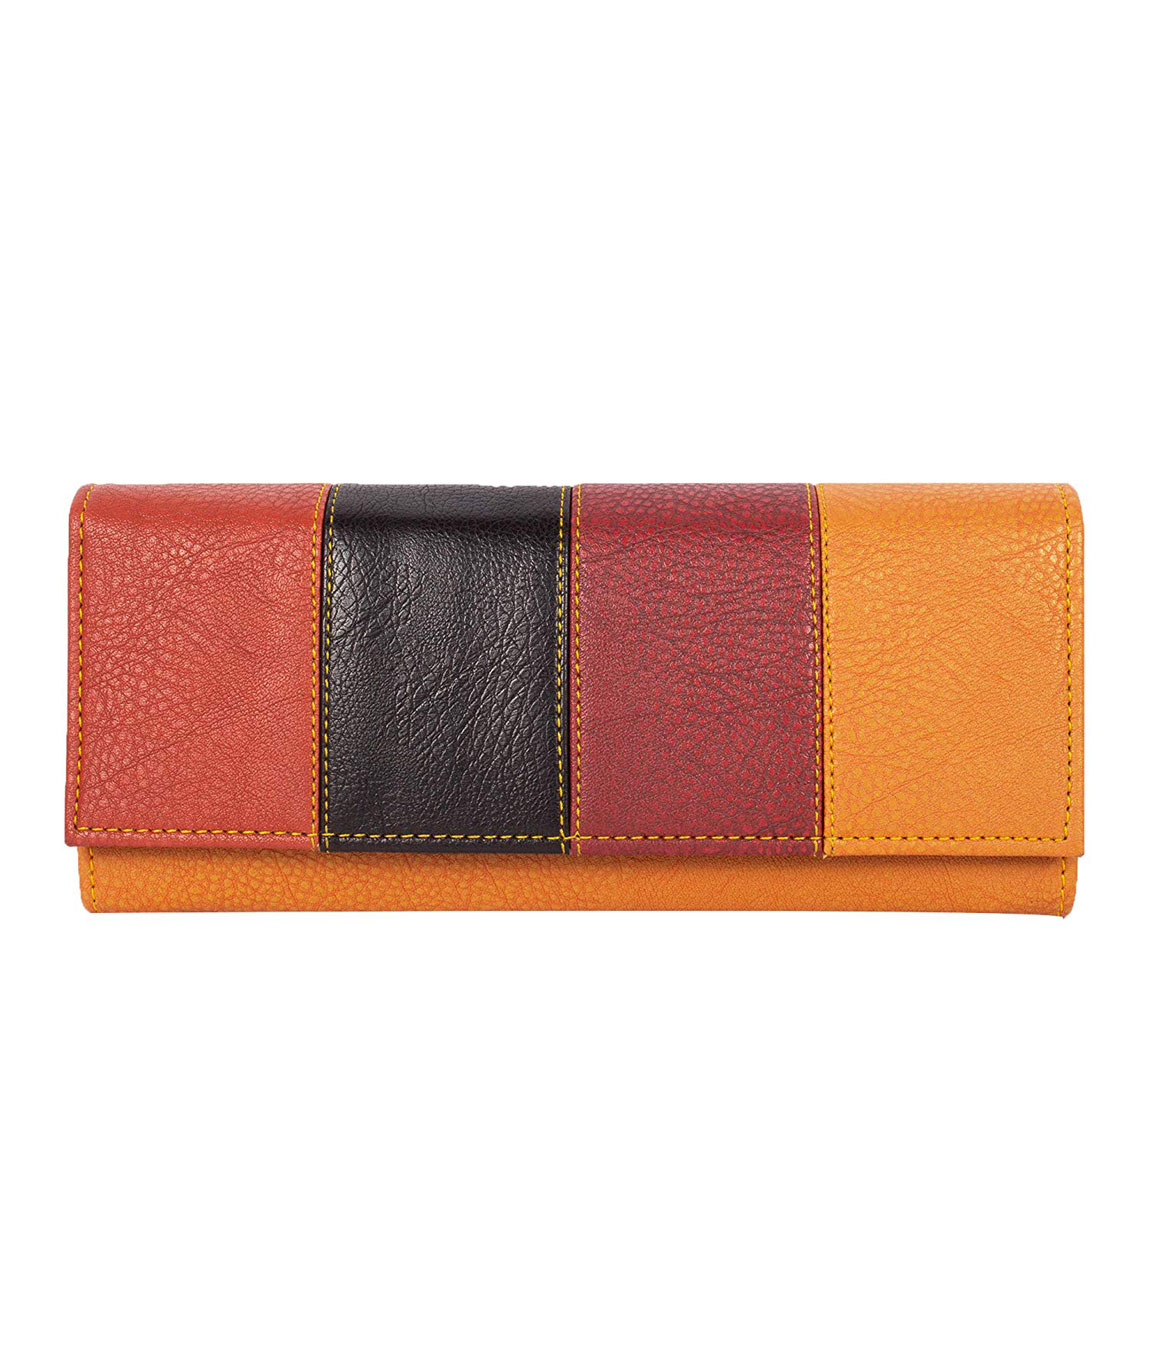 Women Girls Leather Wallets Lady Fashion Long Purse Handbag Women`s Clutches/Genuine Leather Wallet/Purse For Women and Girls(yellow)